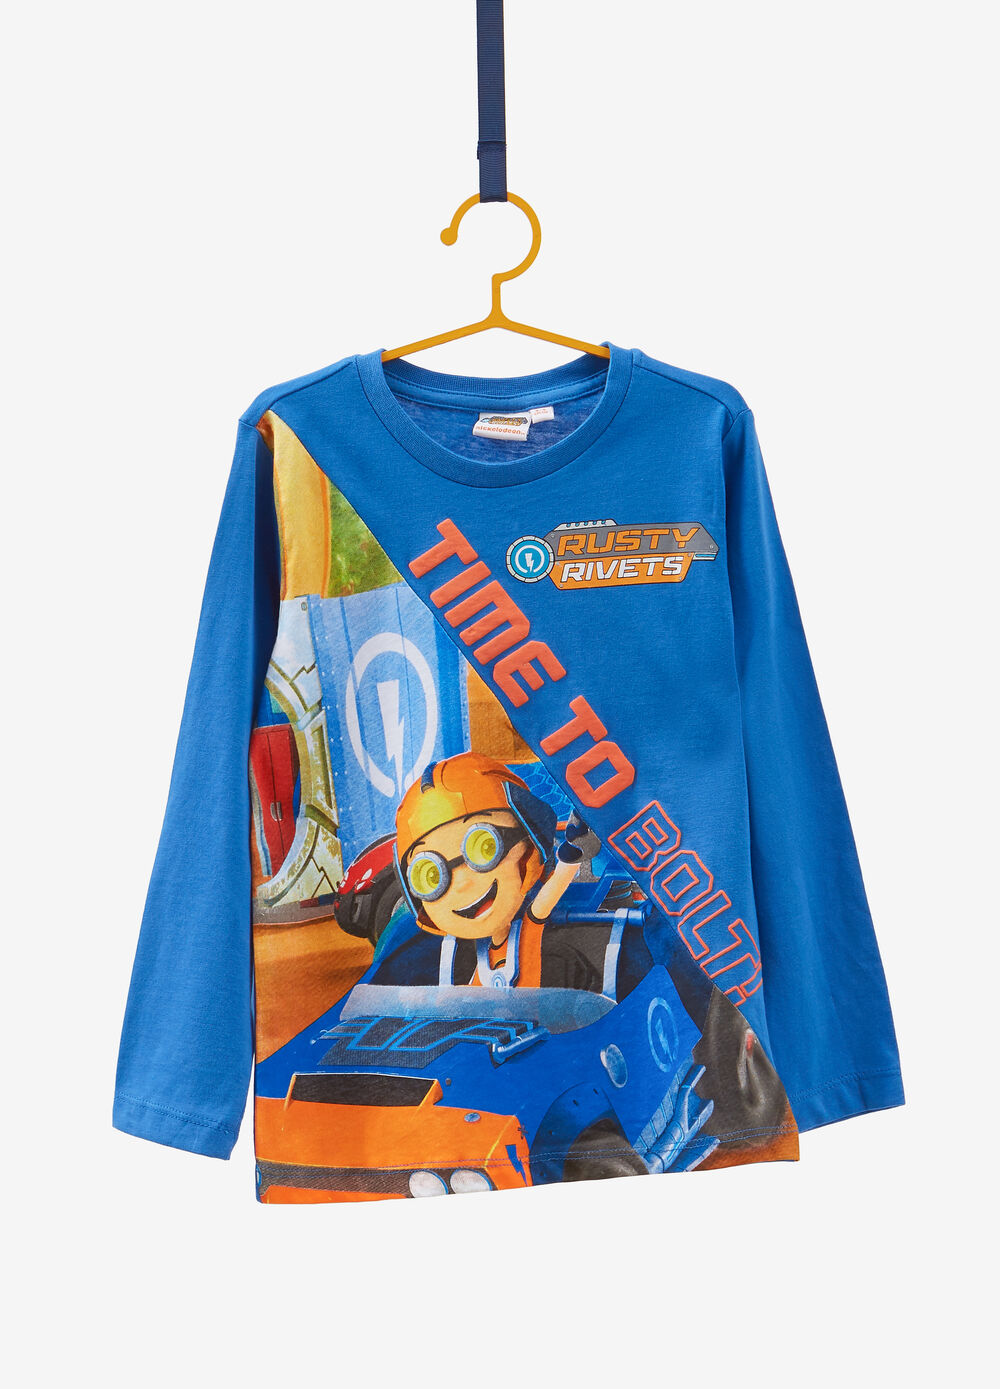 Cotton T-shirt with maxi Rusty Rivets print